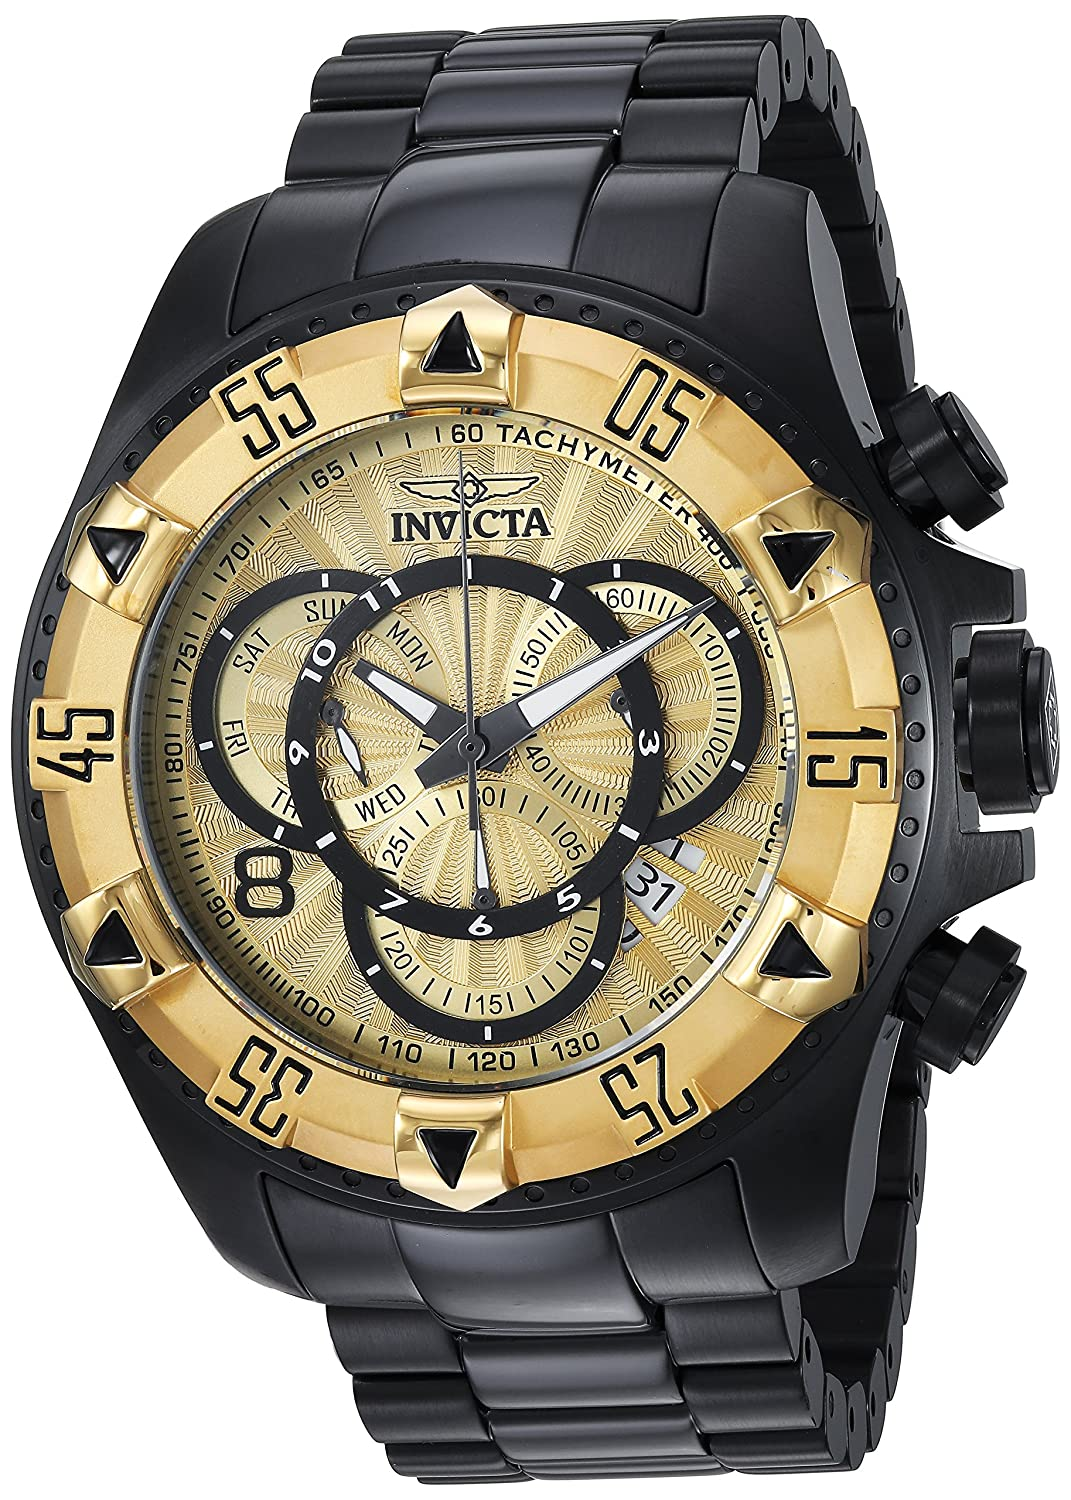 Invicta Men s Excursion Quartz Watch with Stainless-Steel Strap, Black, 26 Model 24267